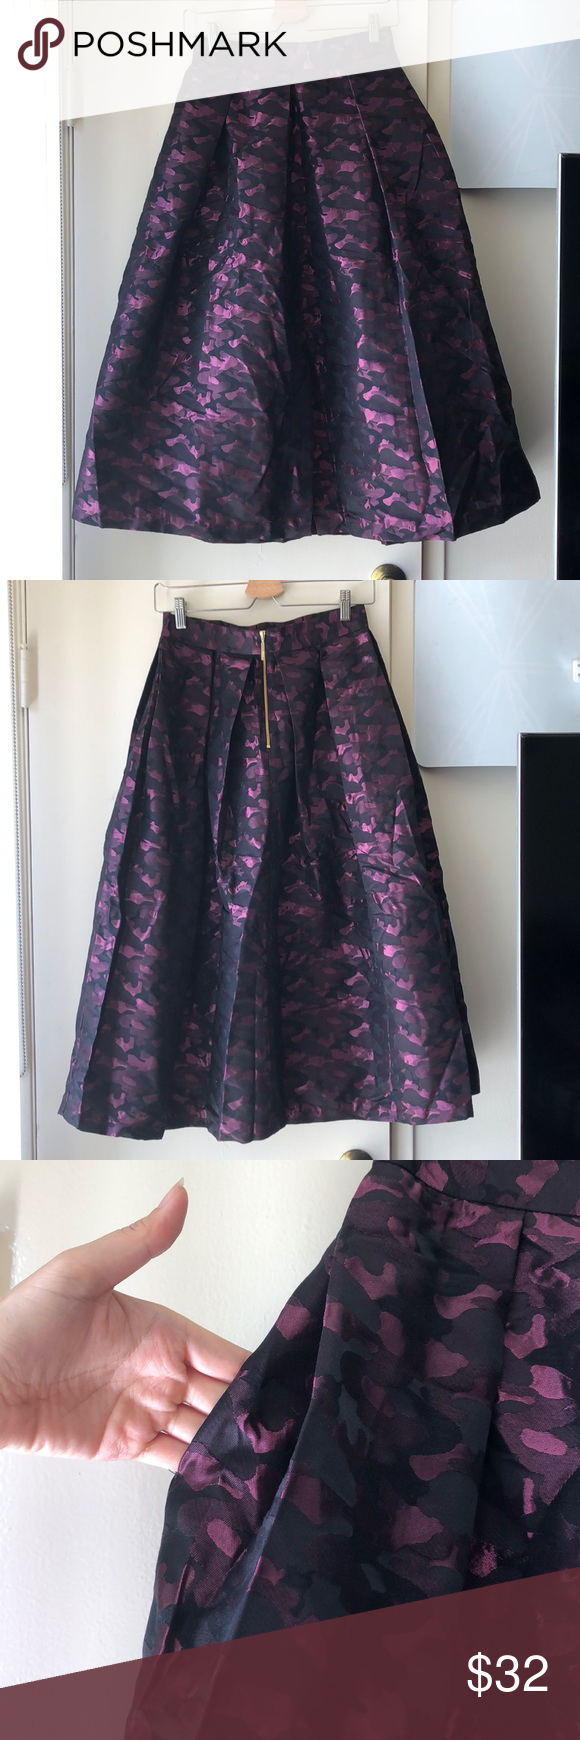 closet a line midi skirt violet metallic pattern clothes design midi skirt pleated midi skirt pinterest